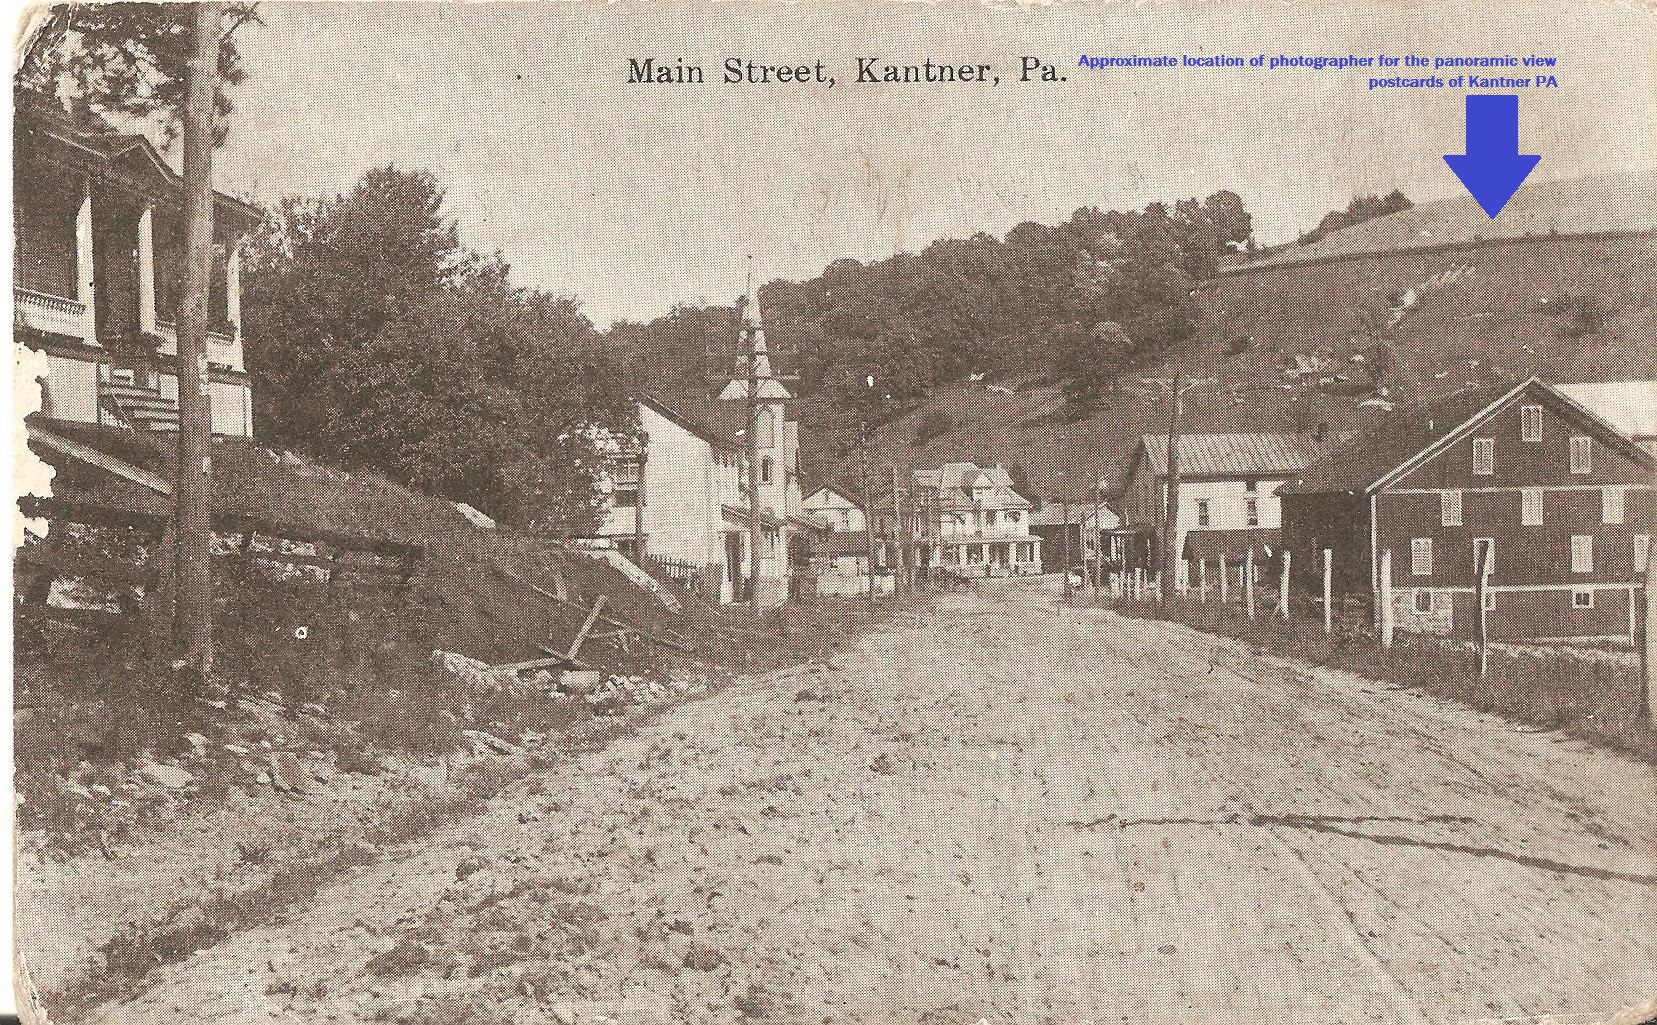 circa 1909 street level view of Kantner, PA